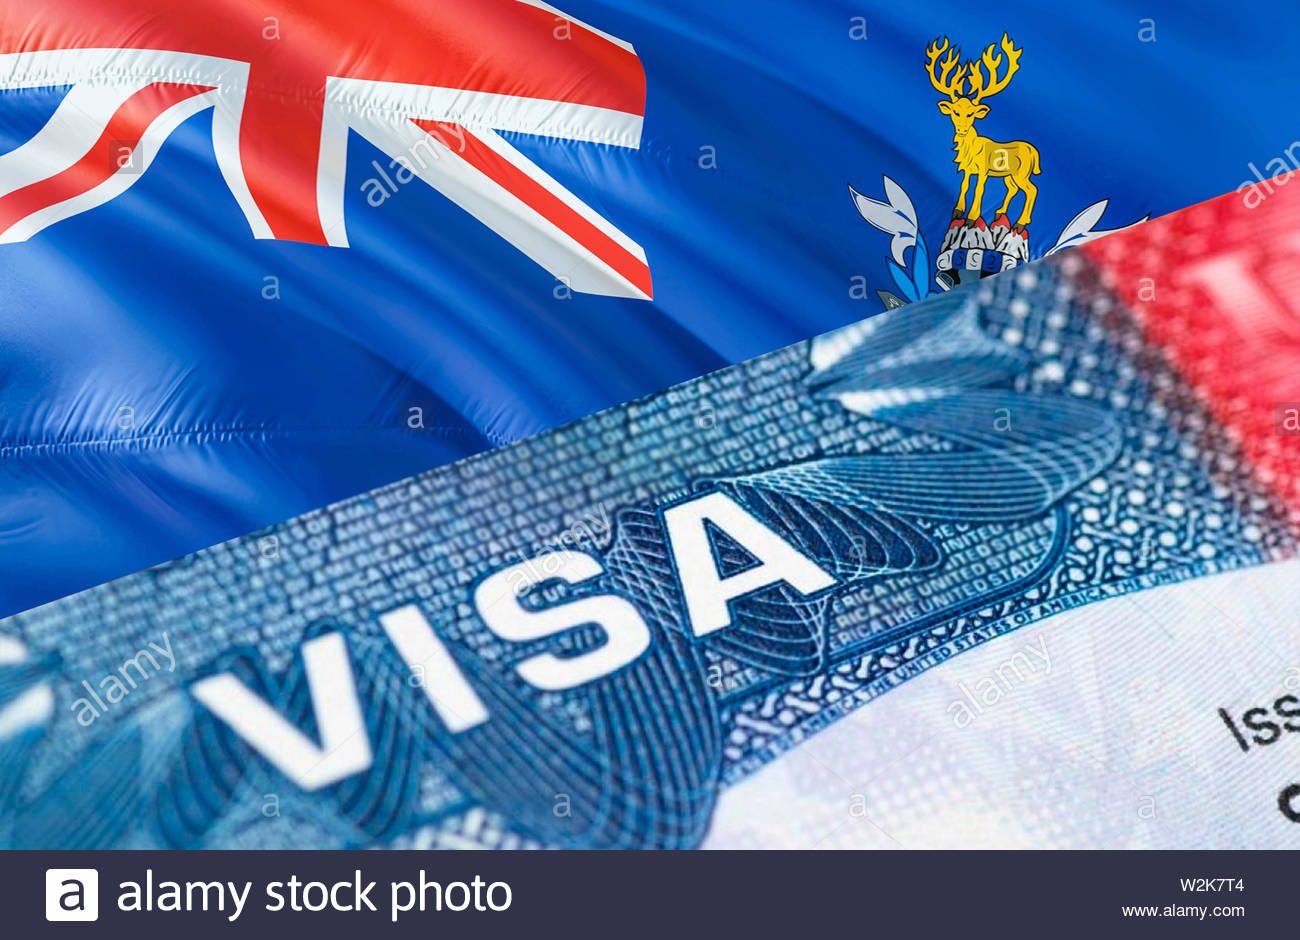 South Georgia Islands Visa Document, with South Georgia and the South Sandwich Islands flag in background, 3D rendering. South Georgia and the South S - Stock Image